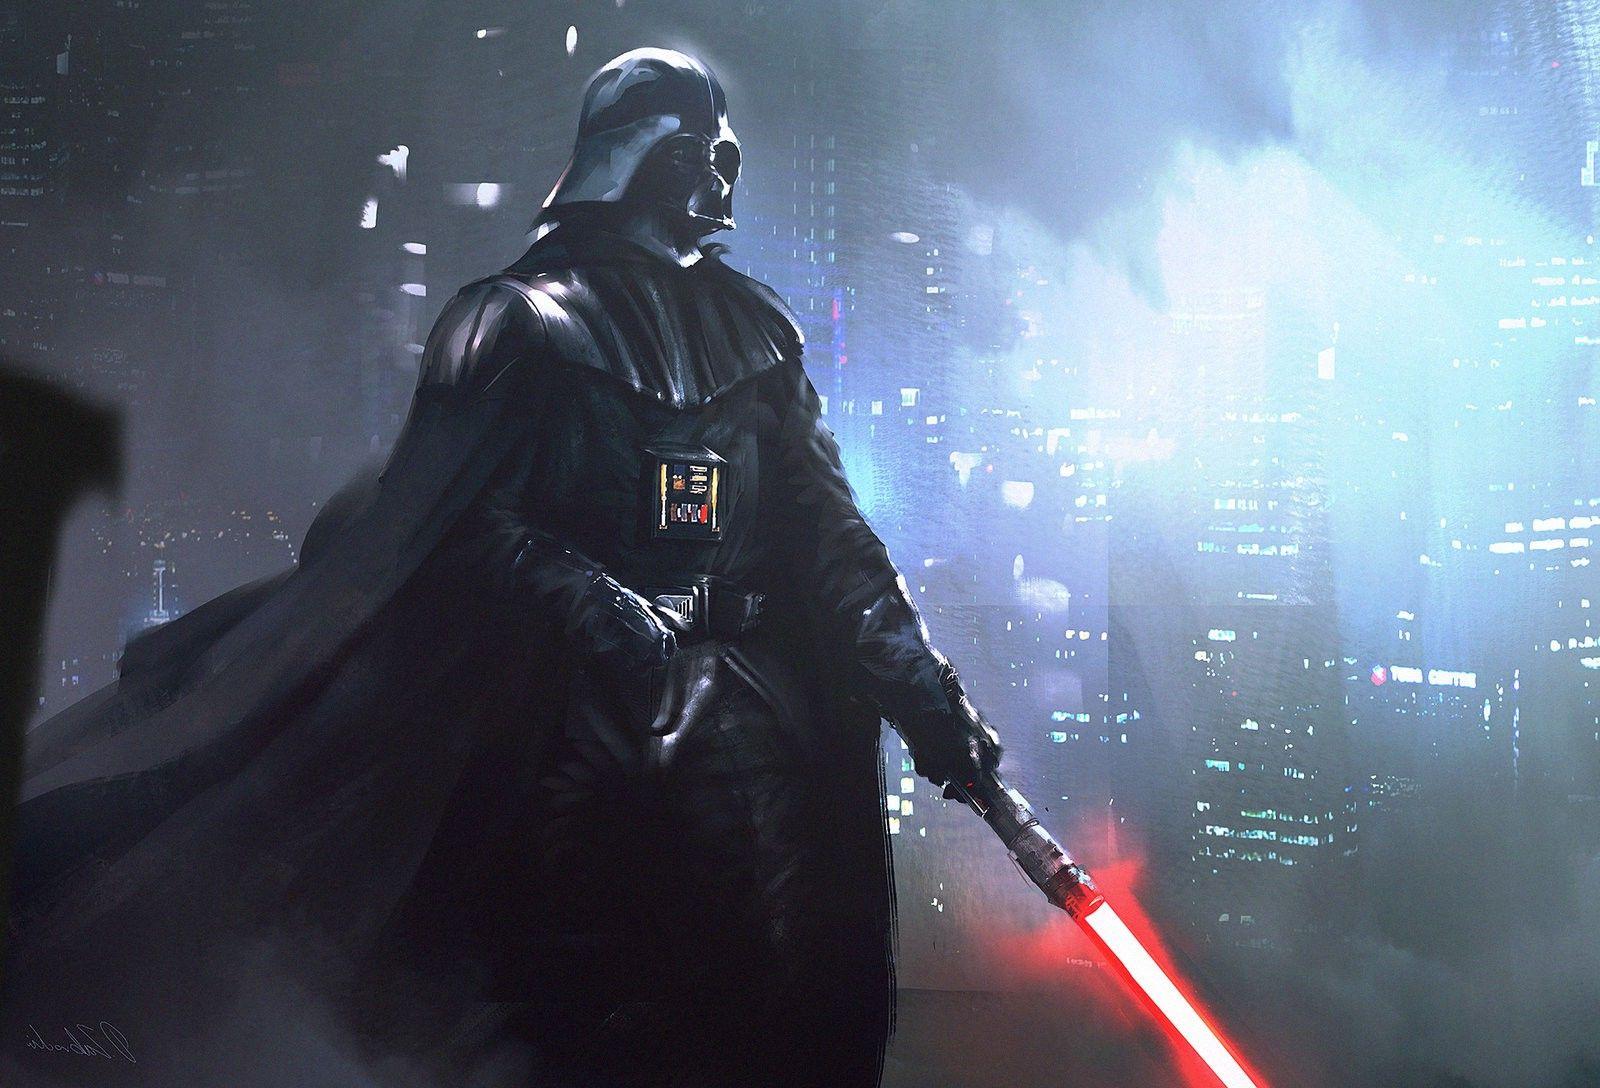 darth vader badass wallpaper